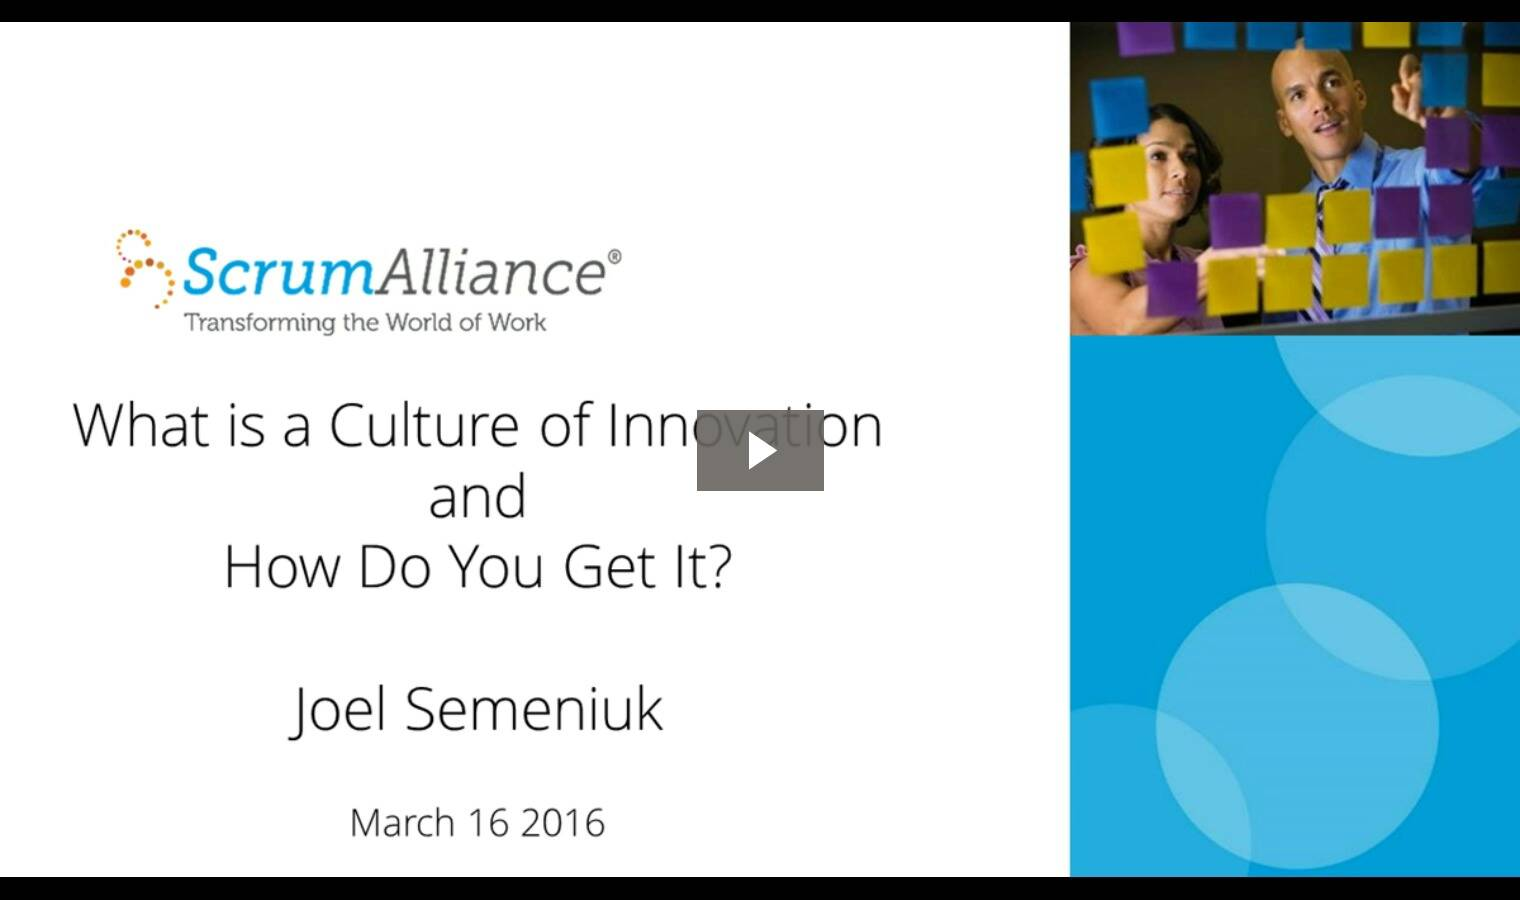 Webinar: What Is a Culture of Innovation, and How Do I Get It?